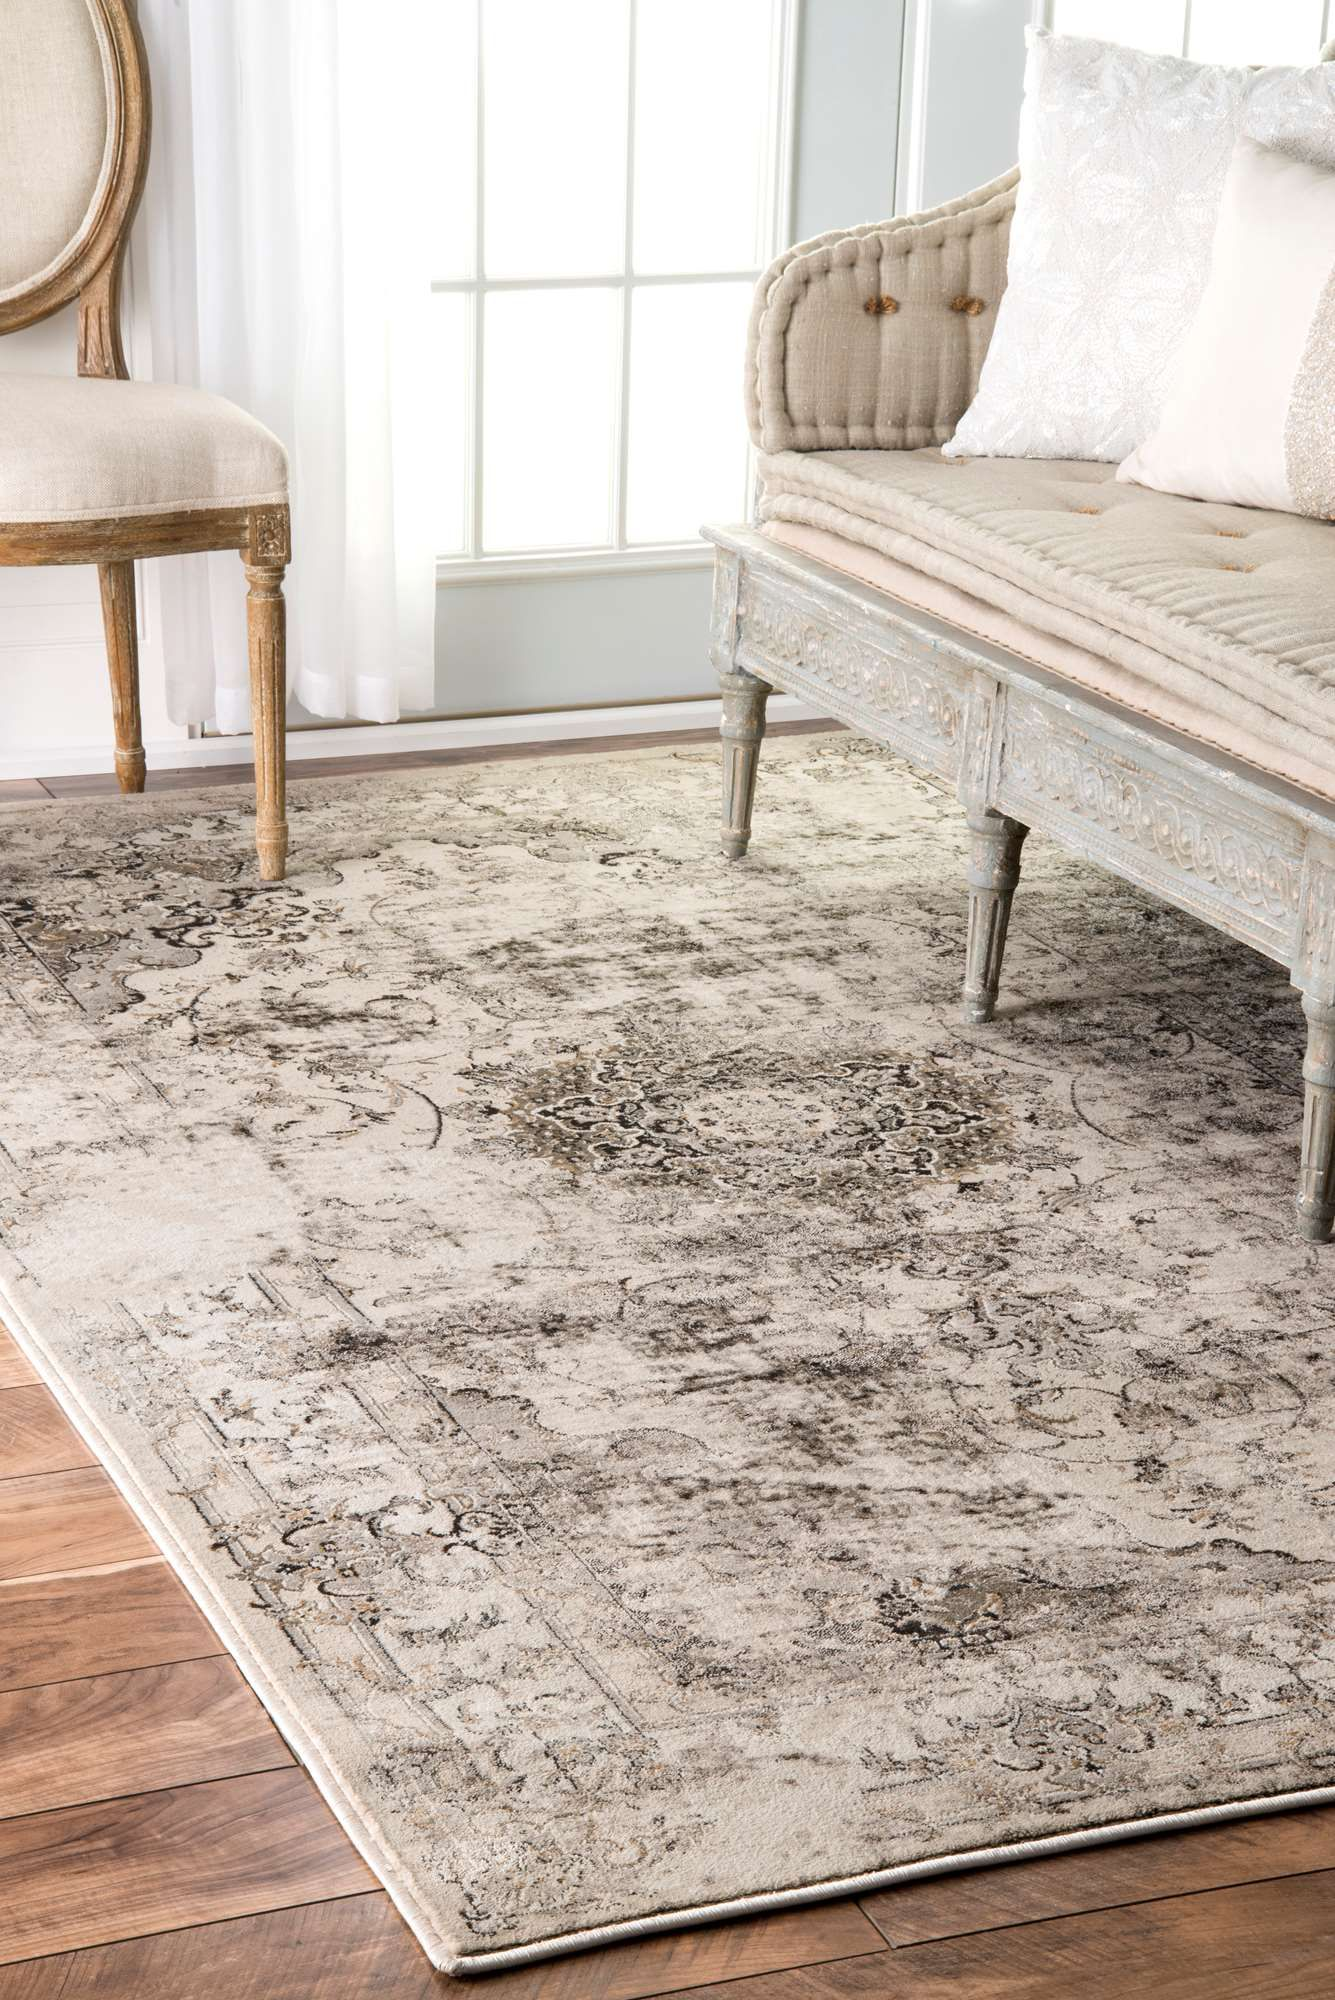 Rugs Usa Area Rugs In Many Styles Including Contemporary Braided Outdoor And Flokati Shag Rugs Buy Vintage Area Rugs Area Rugs Living Room Carpet